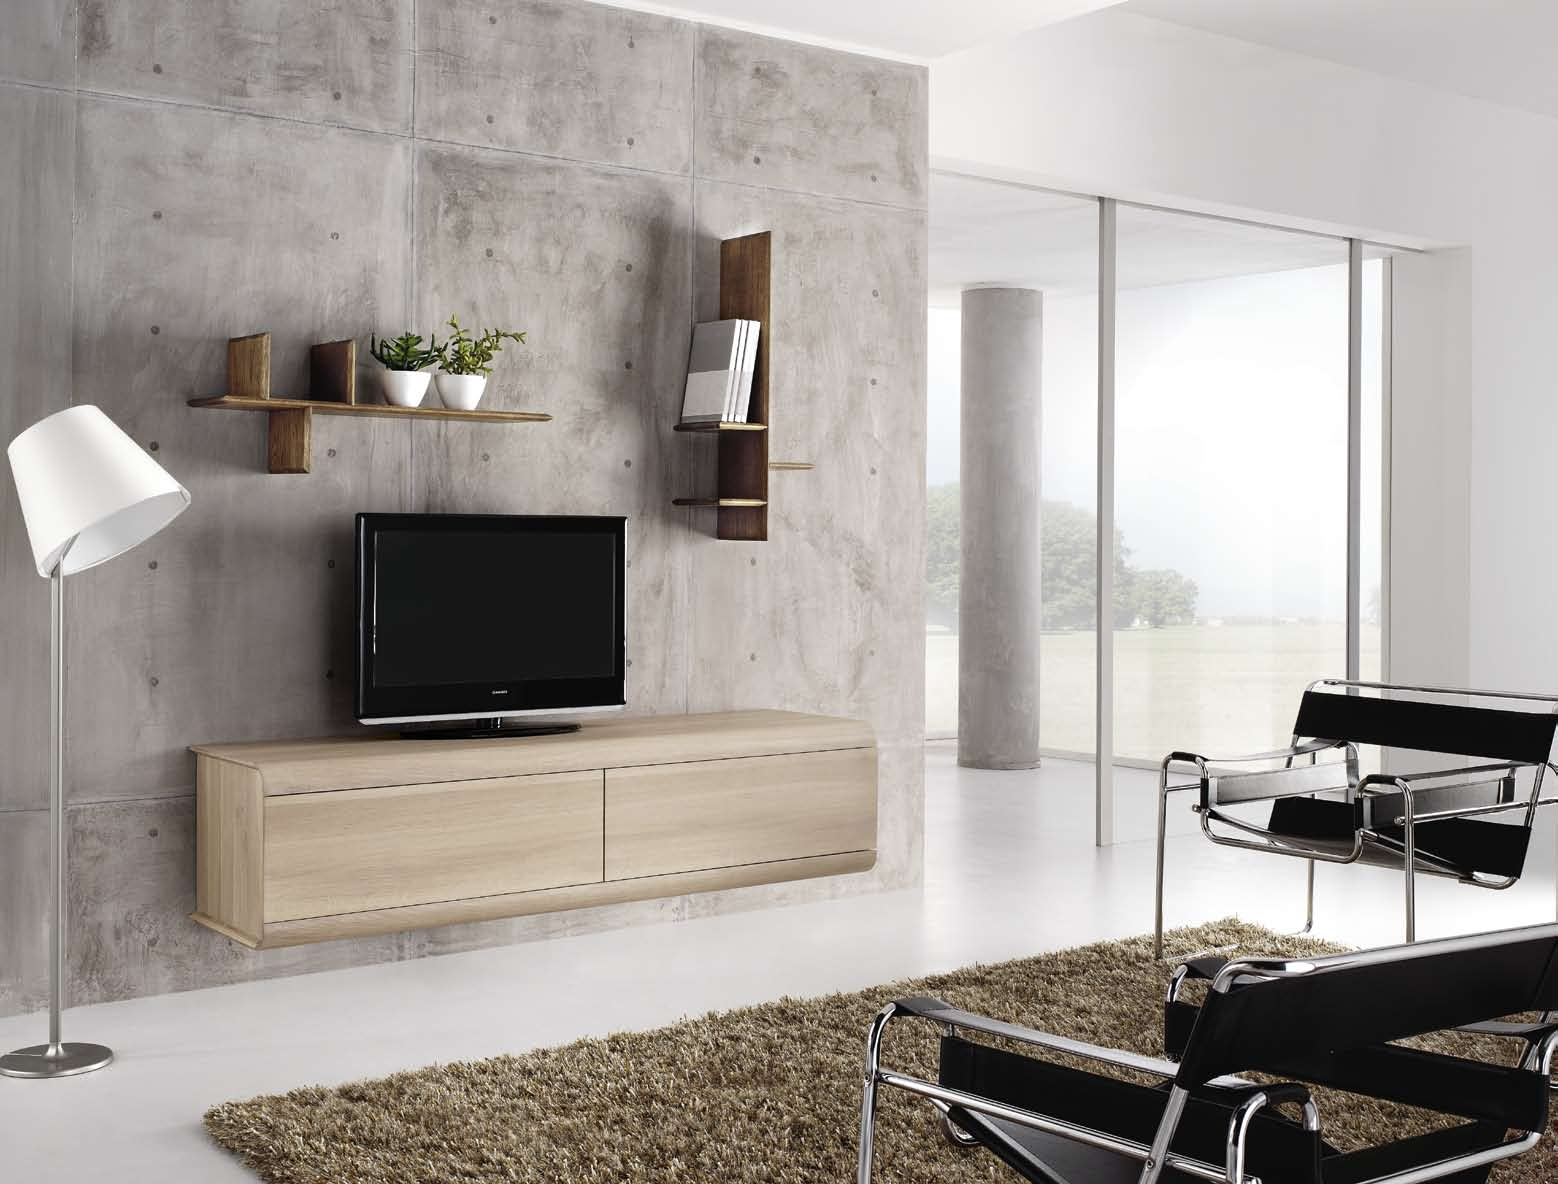 https://www.mobiliacolori.it/wp-content/uploads/2018/08/mobile-tv-soggiorno-rovere-massello.jpg